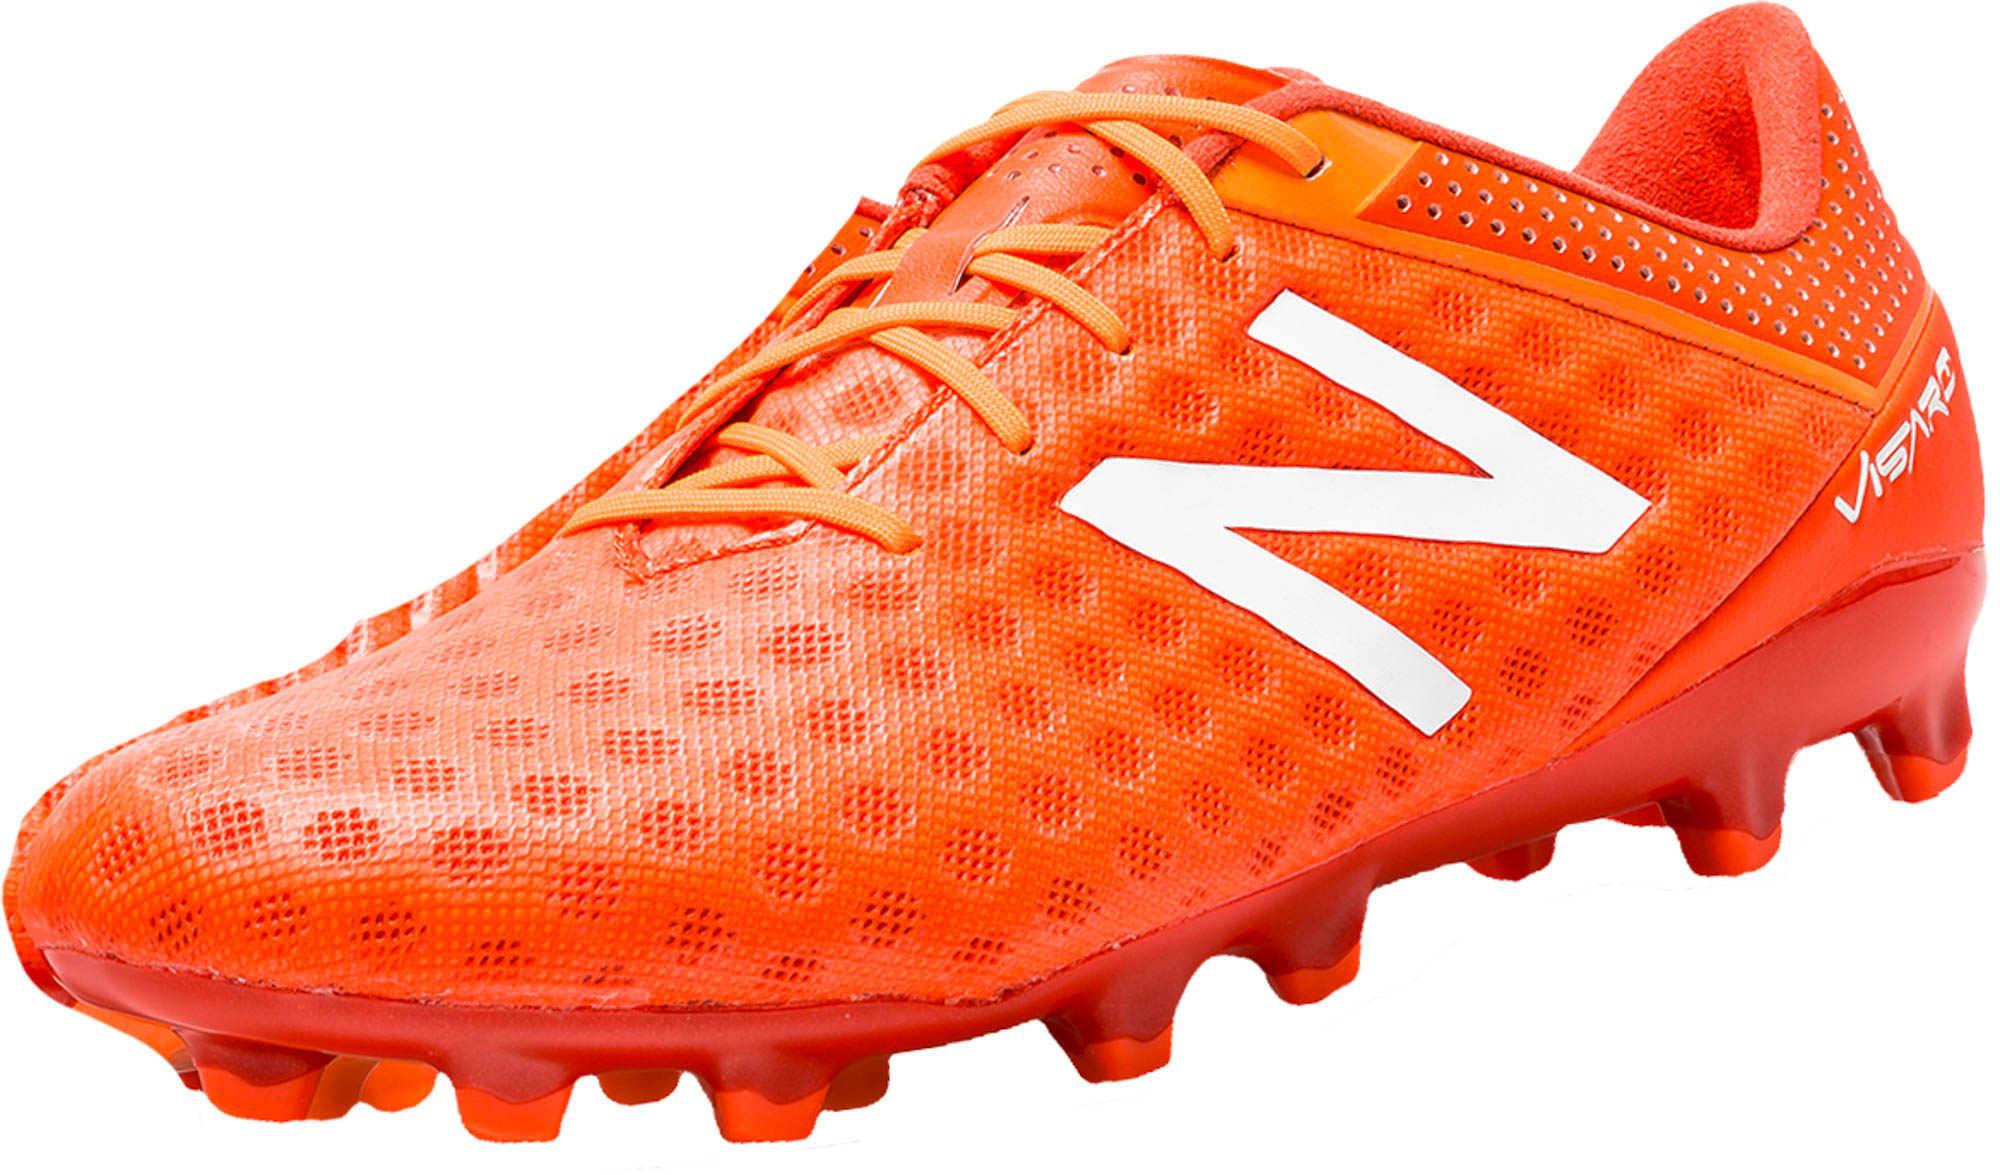 latest discount fashion style outlet online new balance visaro womens red Sale,up to 33% Discounts